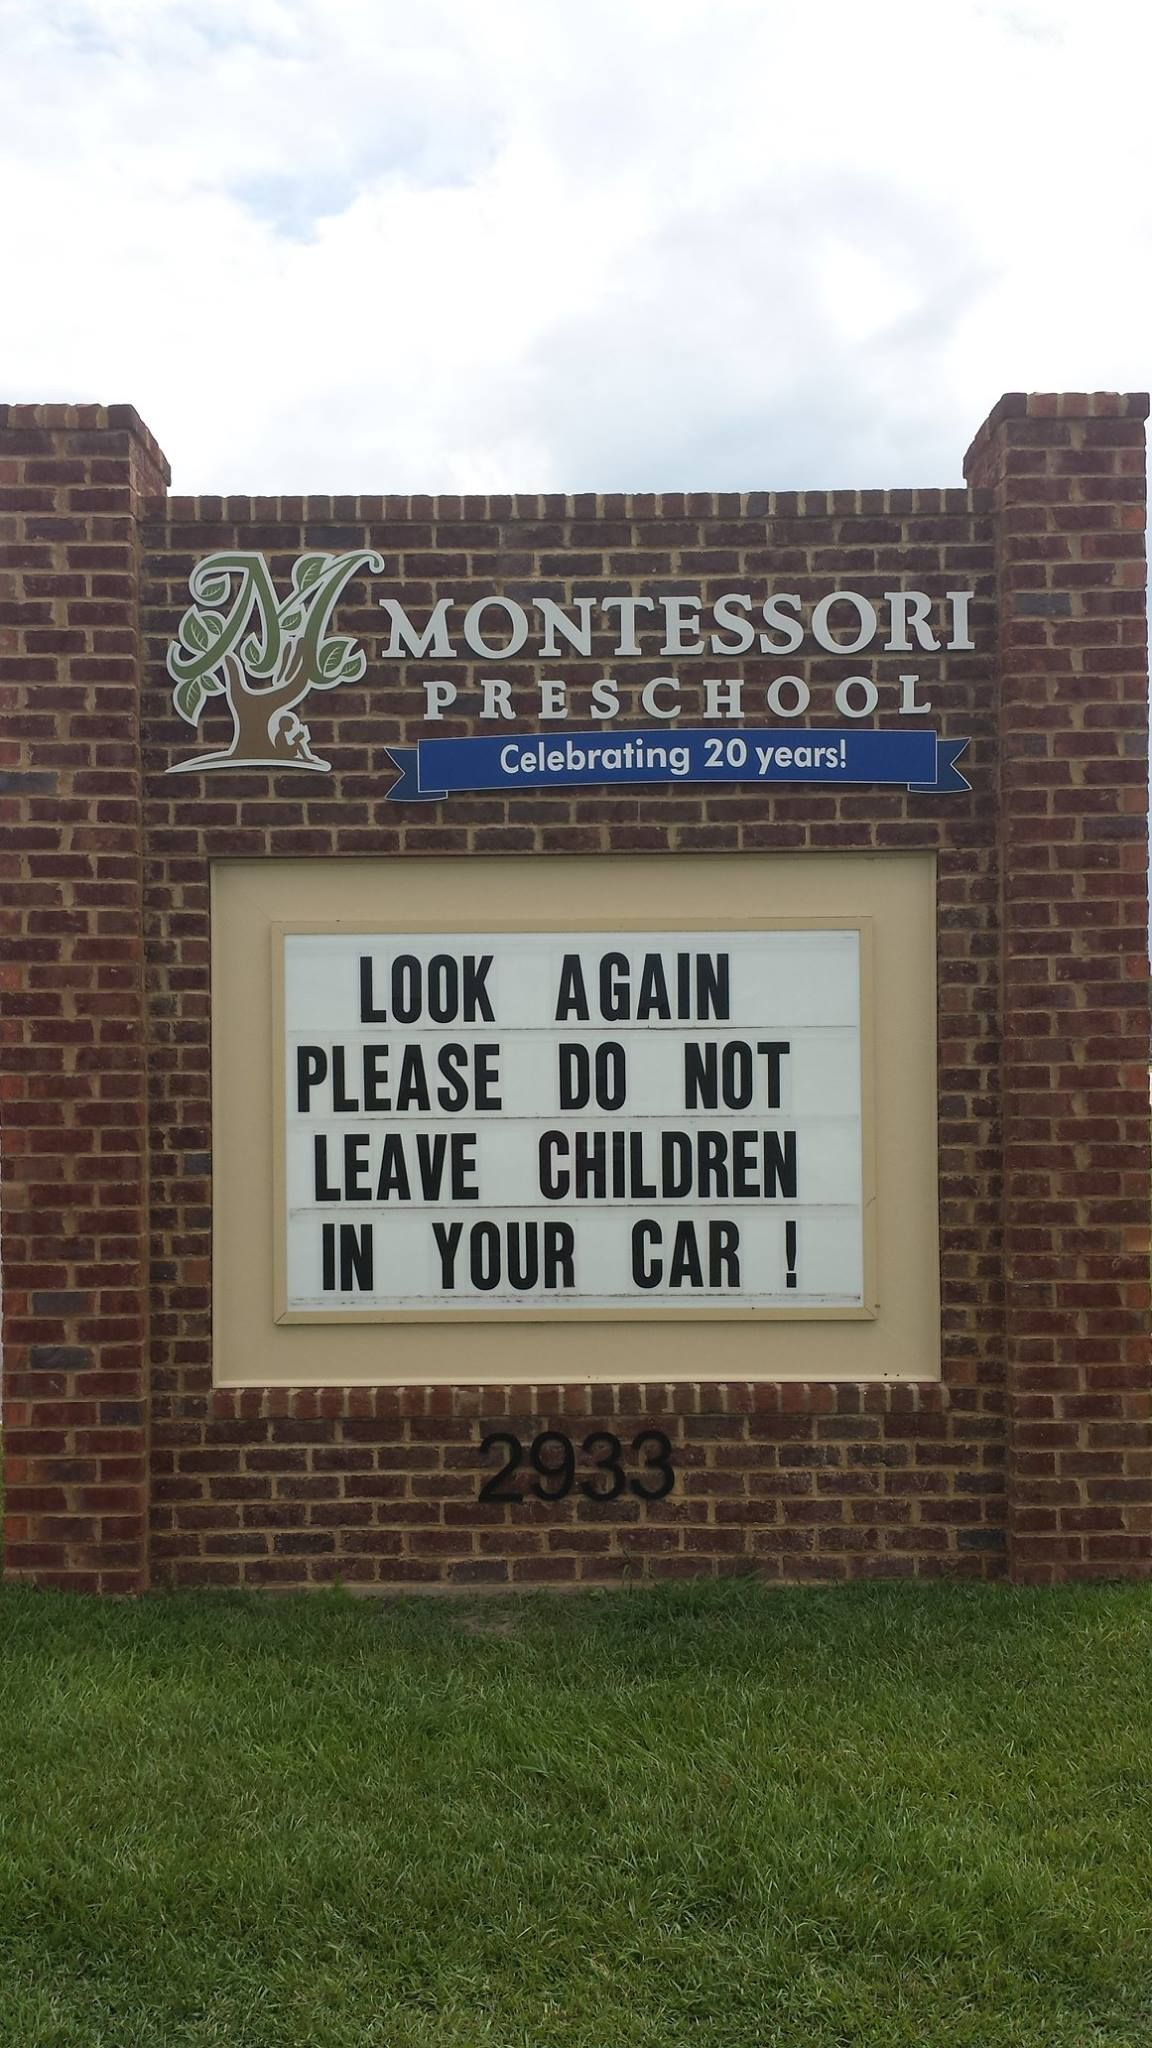 Shout Out To The Richmond Hill Montessori Preschool For